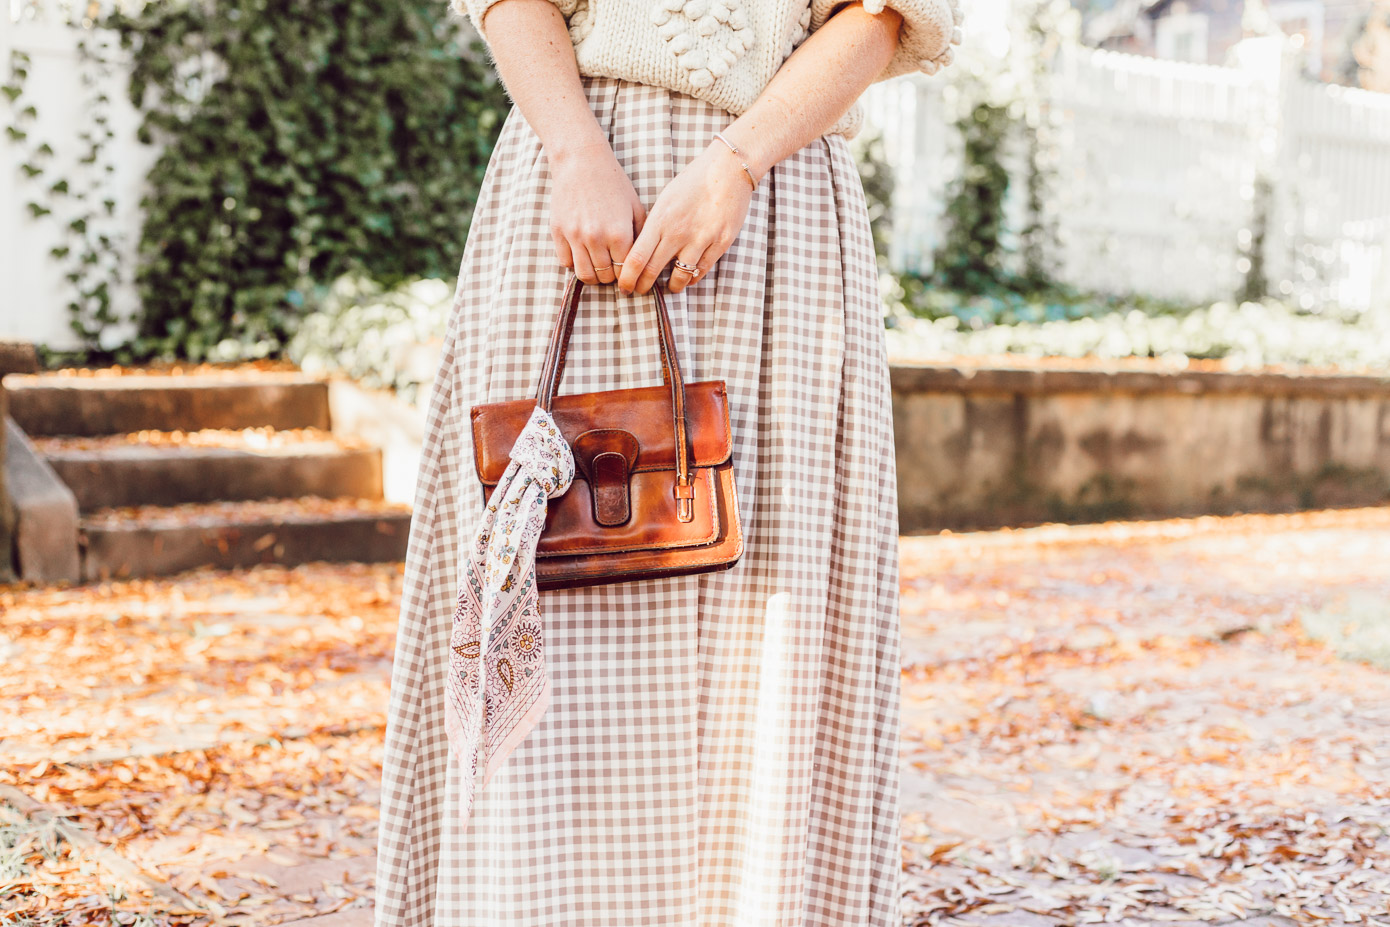 Spice Up Your Winter Date Night Look with a Winter Maxi Skirt featured on Louella Reese | Gingham Maxi Skirt, Cognac Leather Handbag